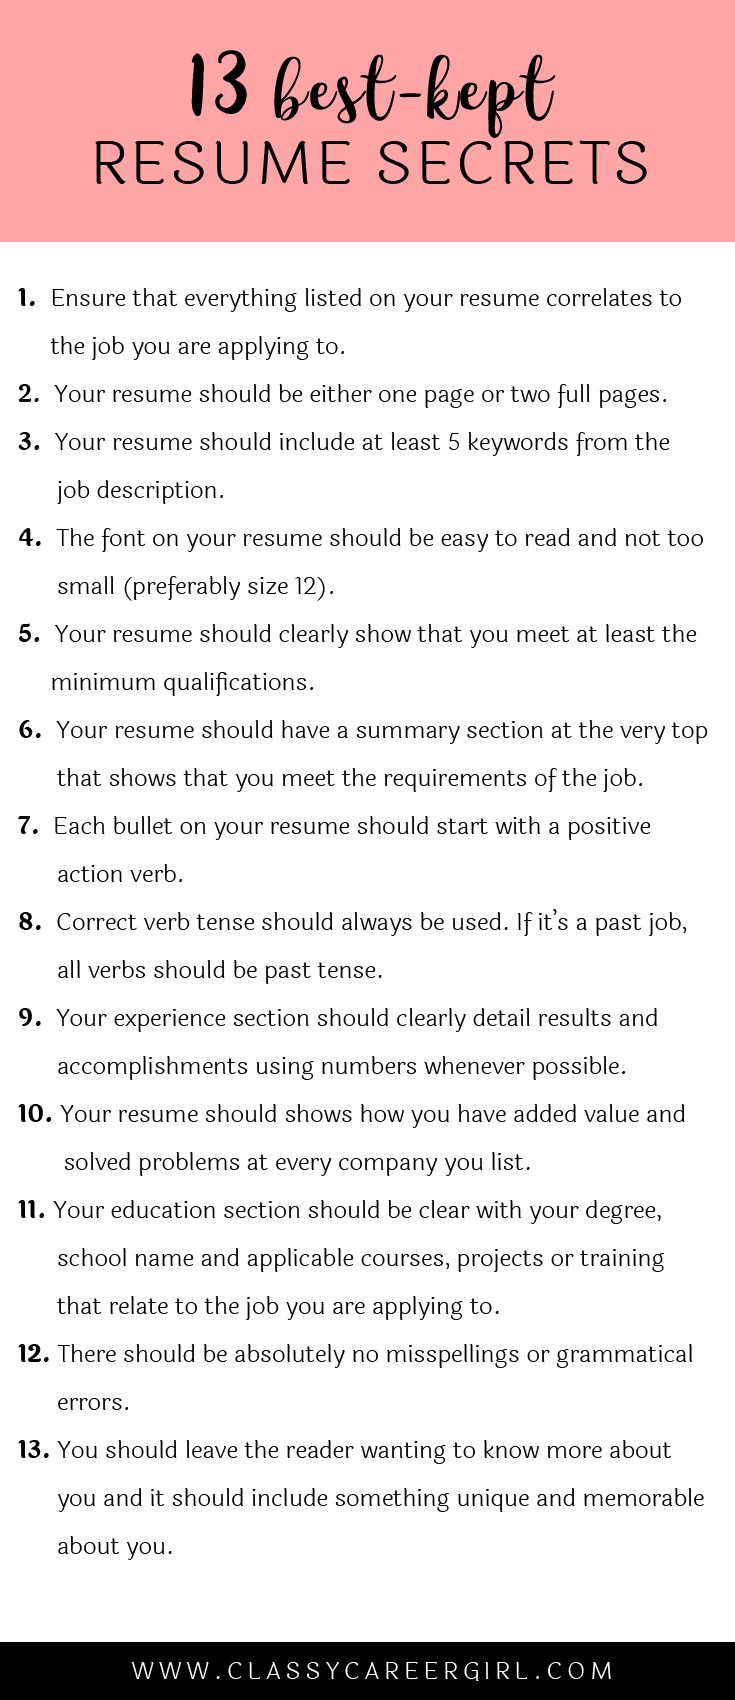 Opposenewapstandardsus  Marvellous  Ideas About Resume On Pinterest  Cv Format Resume Cv And  With Fascinating Some Hiring Managers Will Toss Your Resume Out If You Dont Know These  With Beautiful Designer Resume Templates Also Resume After College In Addition Professional Profile On Resume And Pharmaceutical Sales Rep Resume As Well As Good Objectives To Put On A Resume Additionally Professional Resume Builders From Pinterestcom With Opposenewapstandardsus  Fascinating  Ideas About Resume On Pinterest  Cv Format Resume Cv And  With Beautiful Some Hiring Managers Will Toss Your Resume Out If You Dont Know These  And Marvellous Designer Resume Templates Also Resume After College In Addition Professional Profile On Resume From Pinterestcom